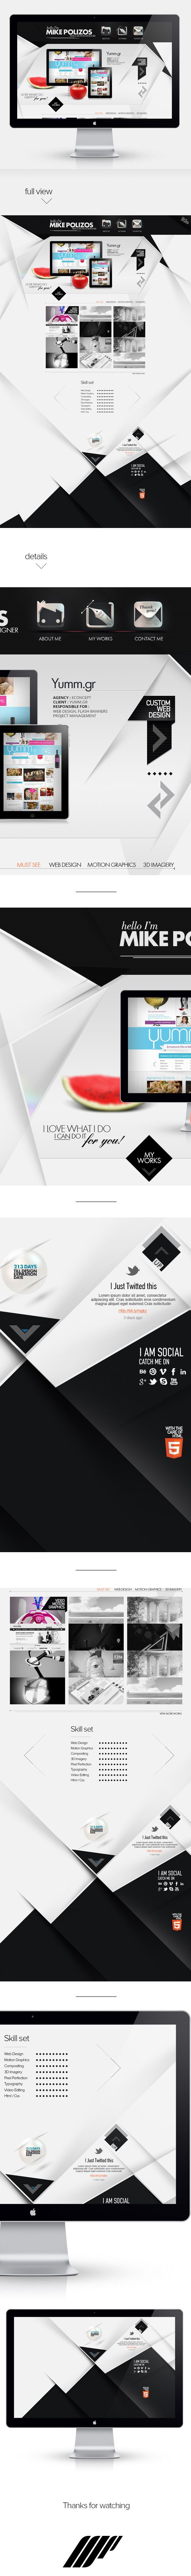 Personal Website Portfolio - First Approach by Mike Polizos, via Behance